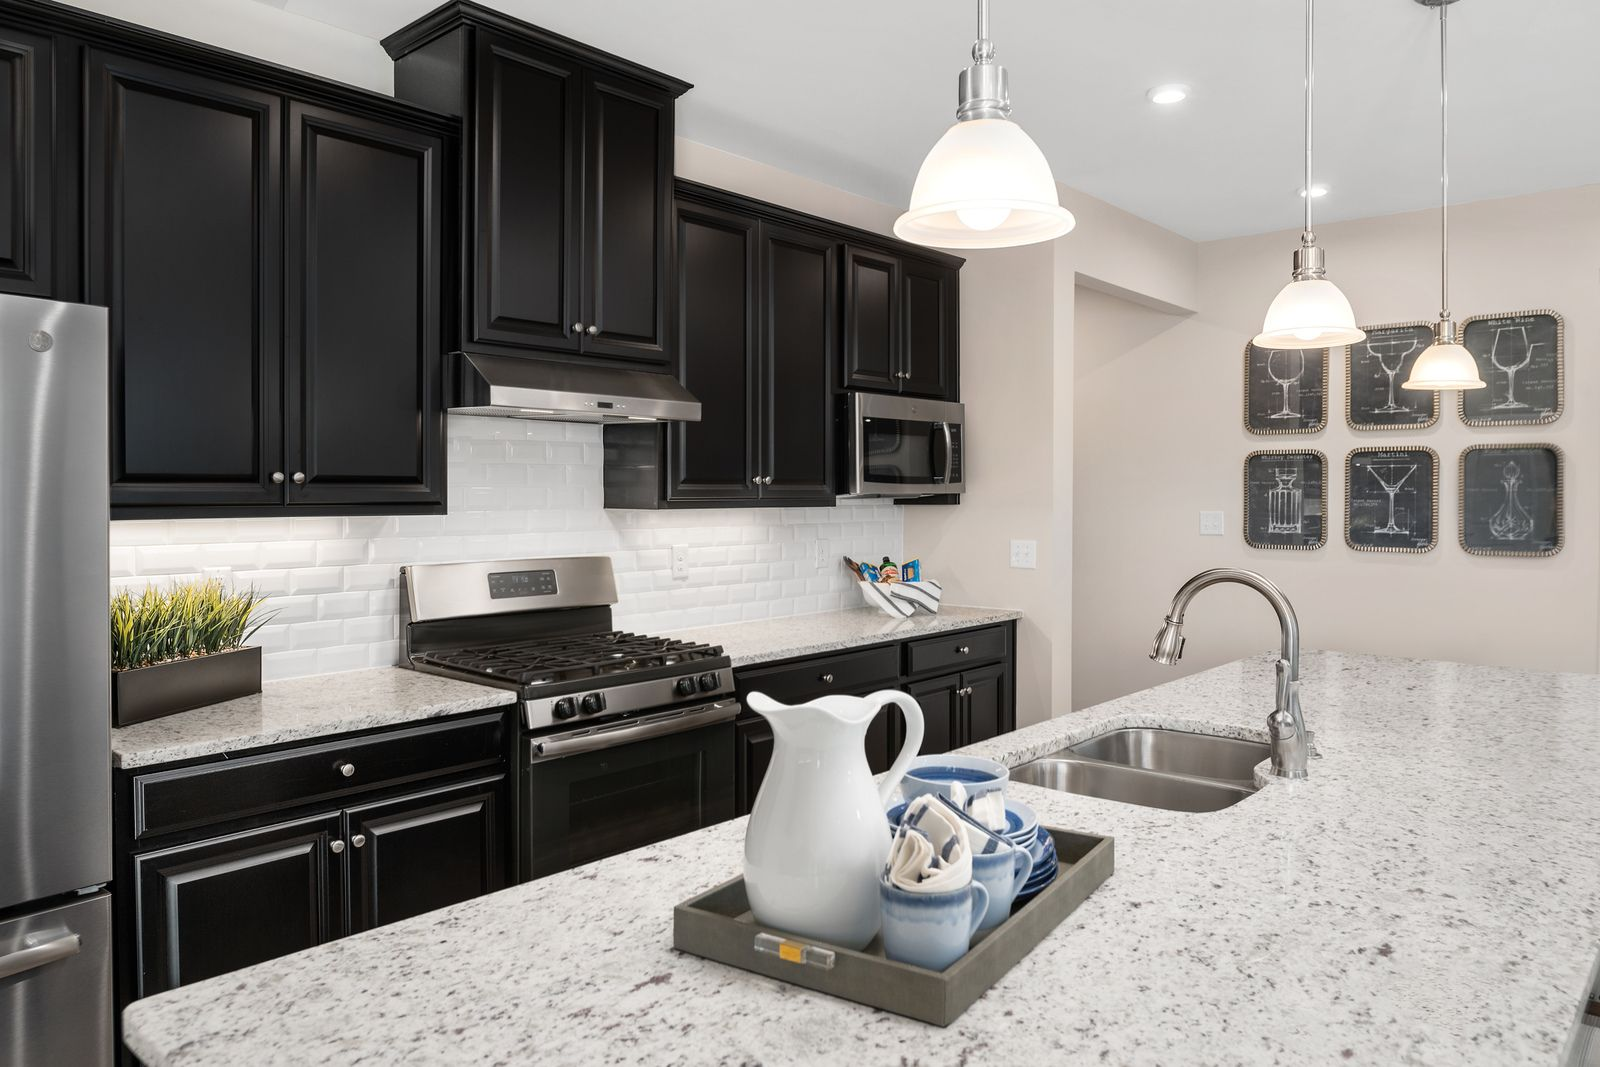 Kitchen featured in the Palladio Ranch By Ryan Homes in Chicago, IL